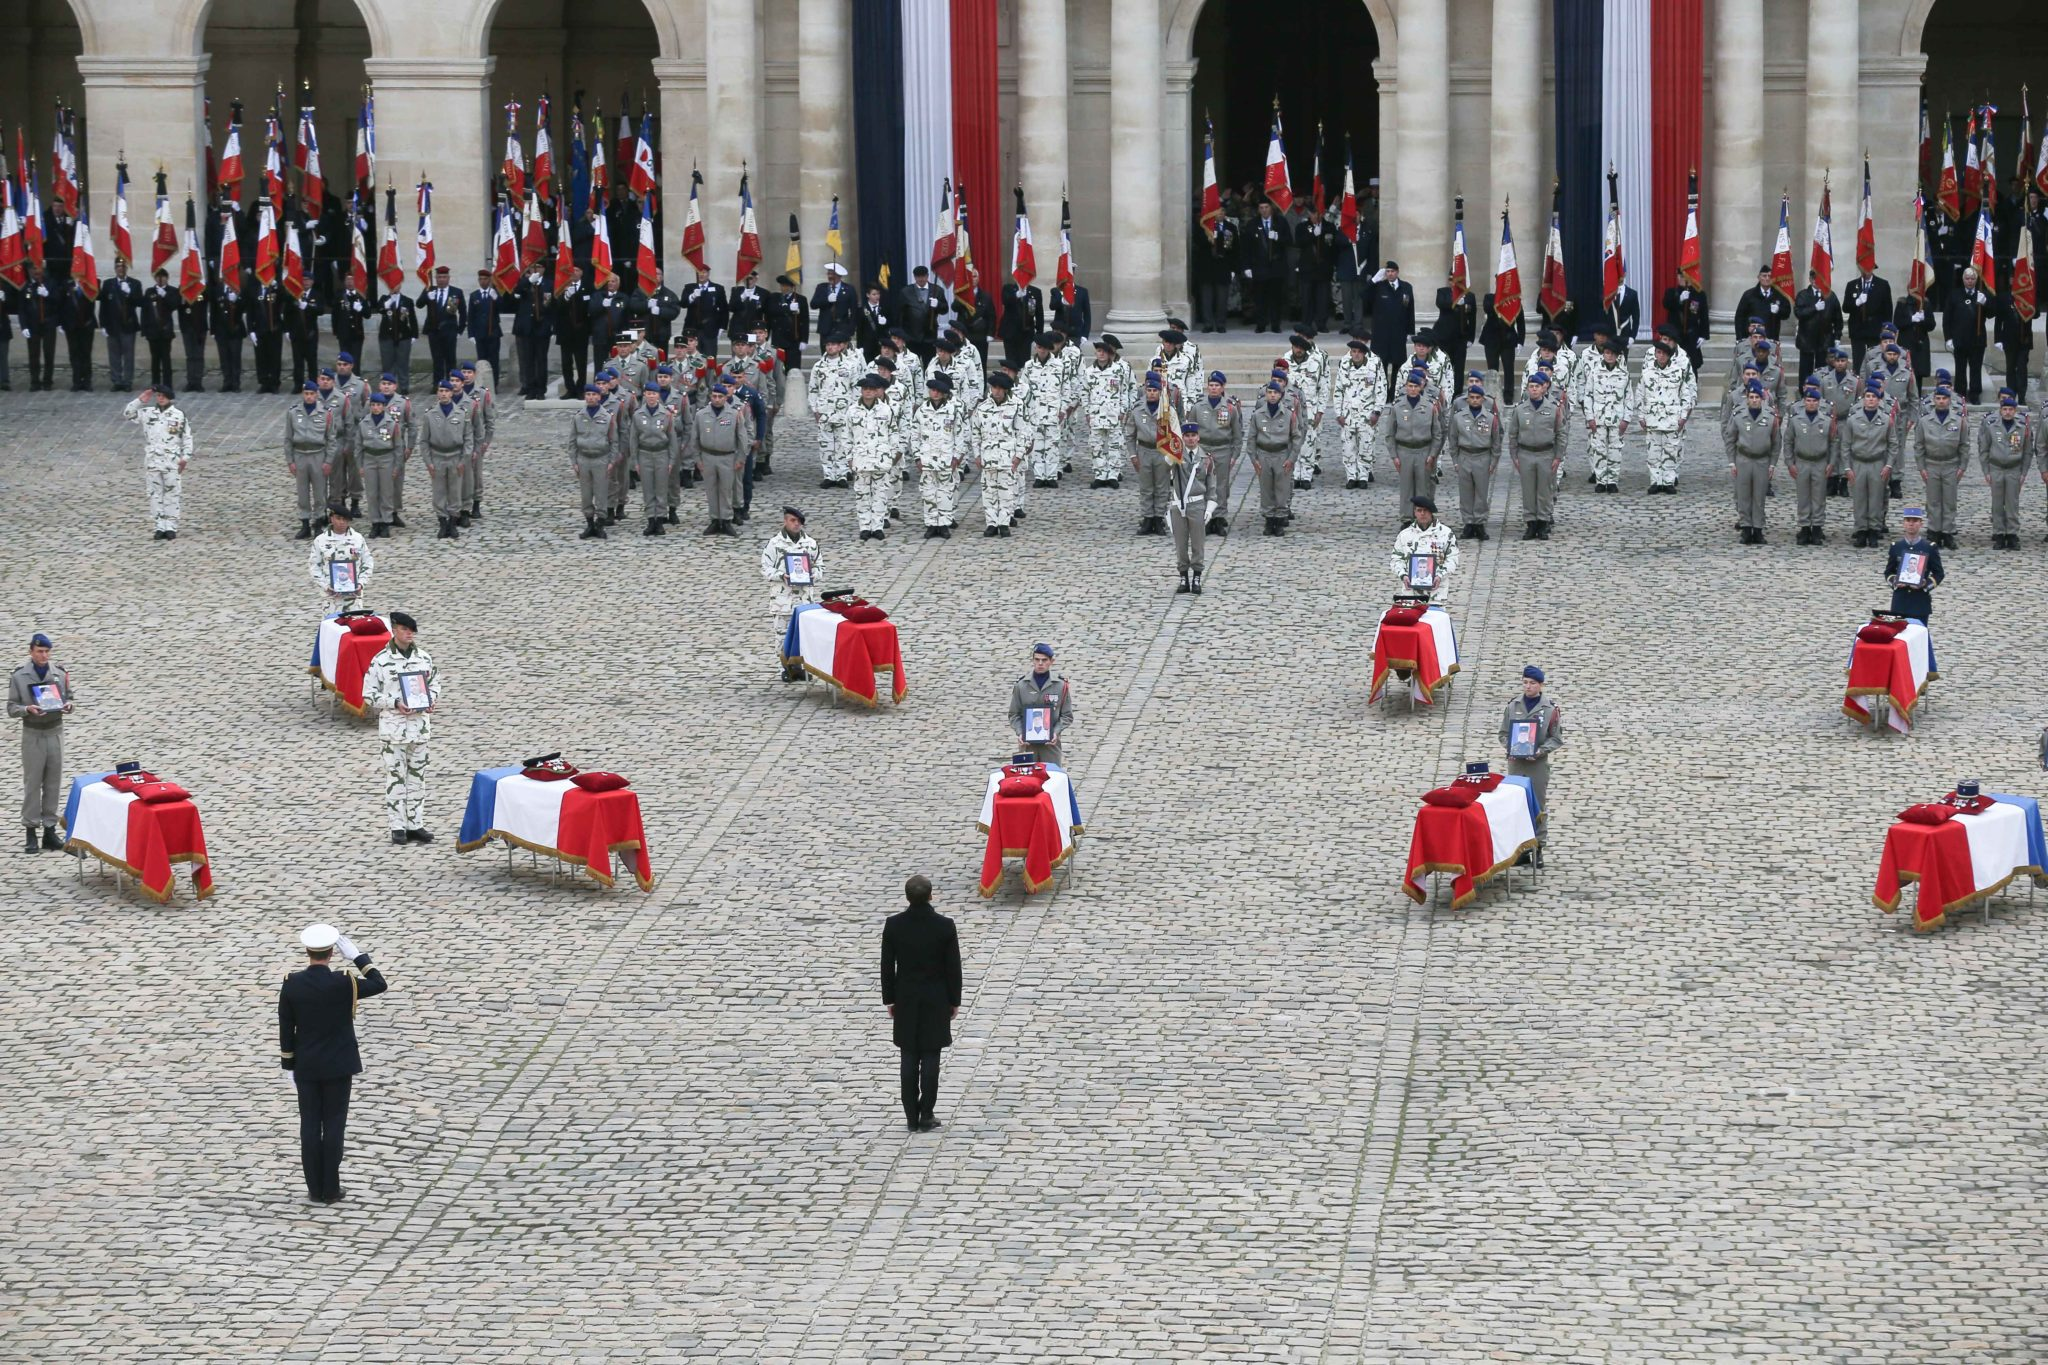 France's President Emmanuel Macron stands in front of coffins of the 13 French soldiers killed in Mali during a tribute ceremony on December 2, 2019 at the Invalides monument, in Paris. In its biggest military funeral in decades, France is honoring 13 sold